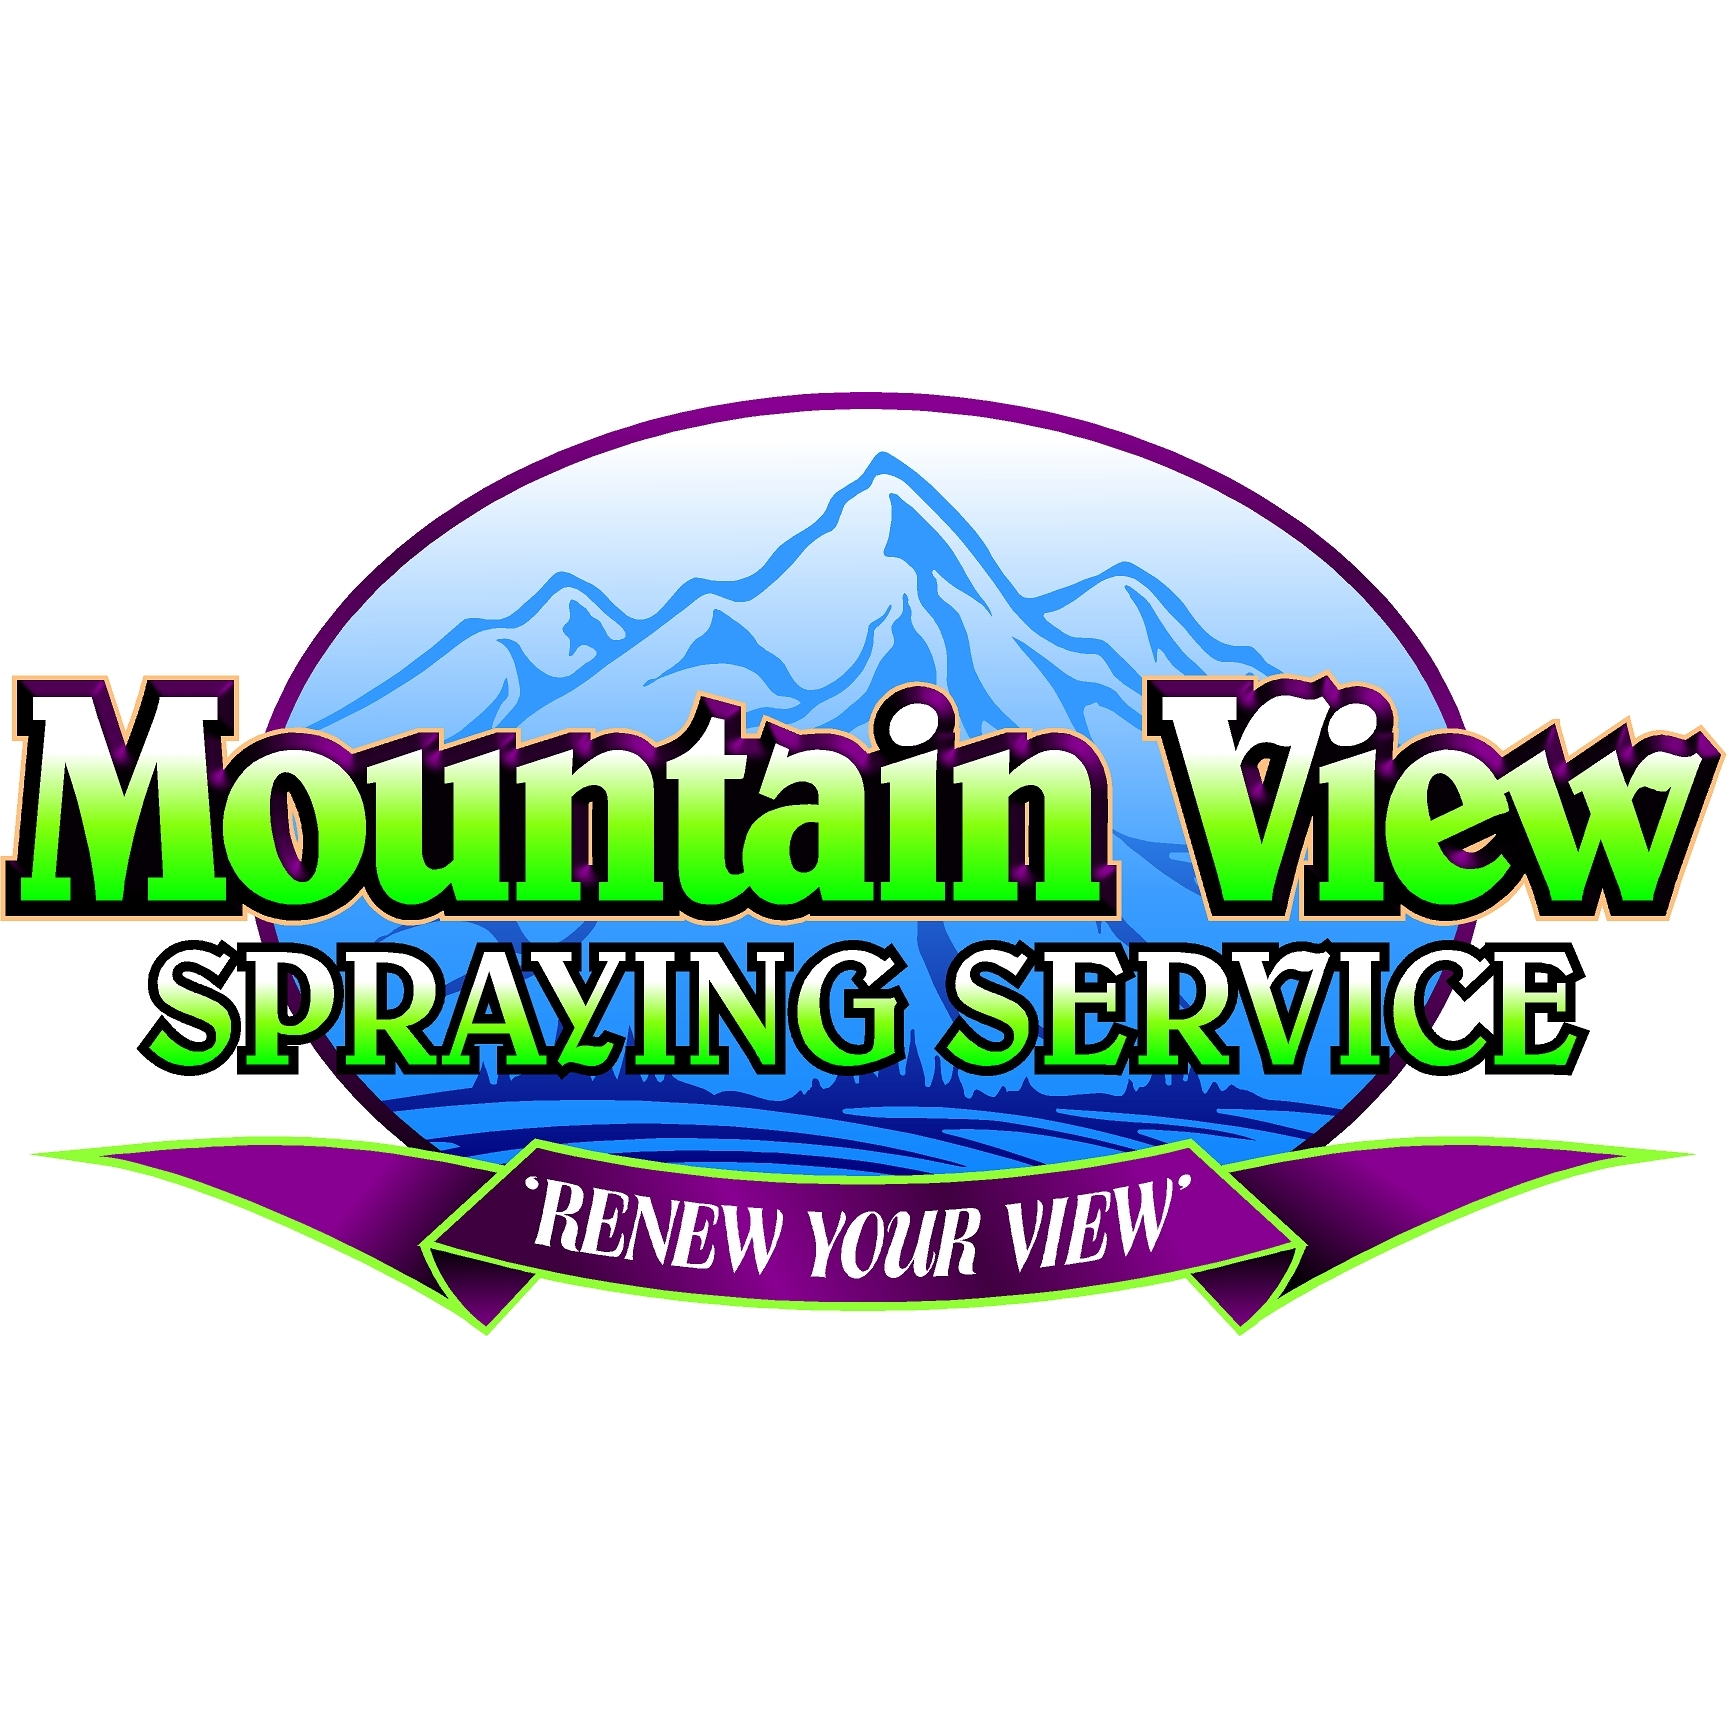 Mountain View Spraying Service